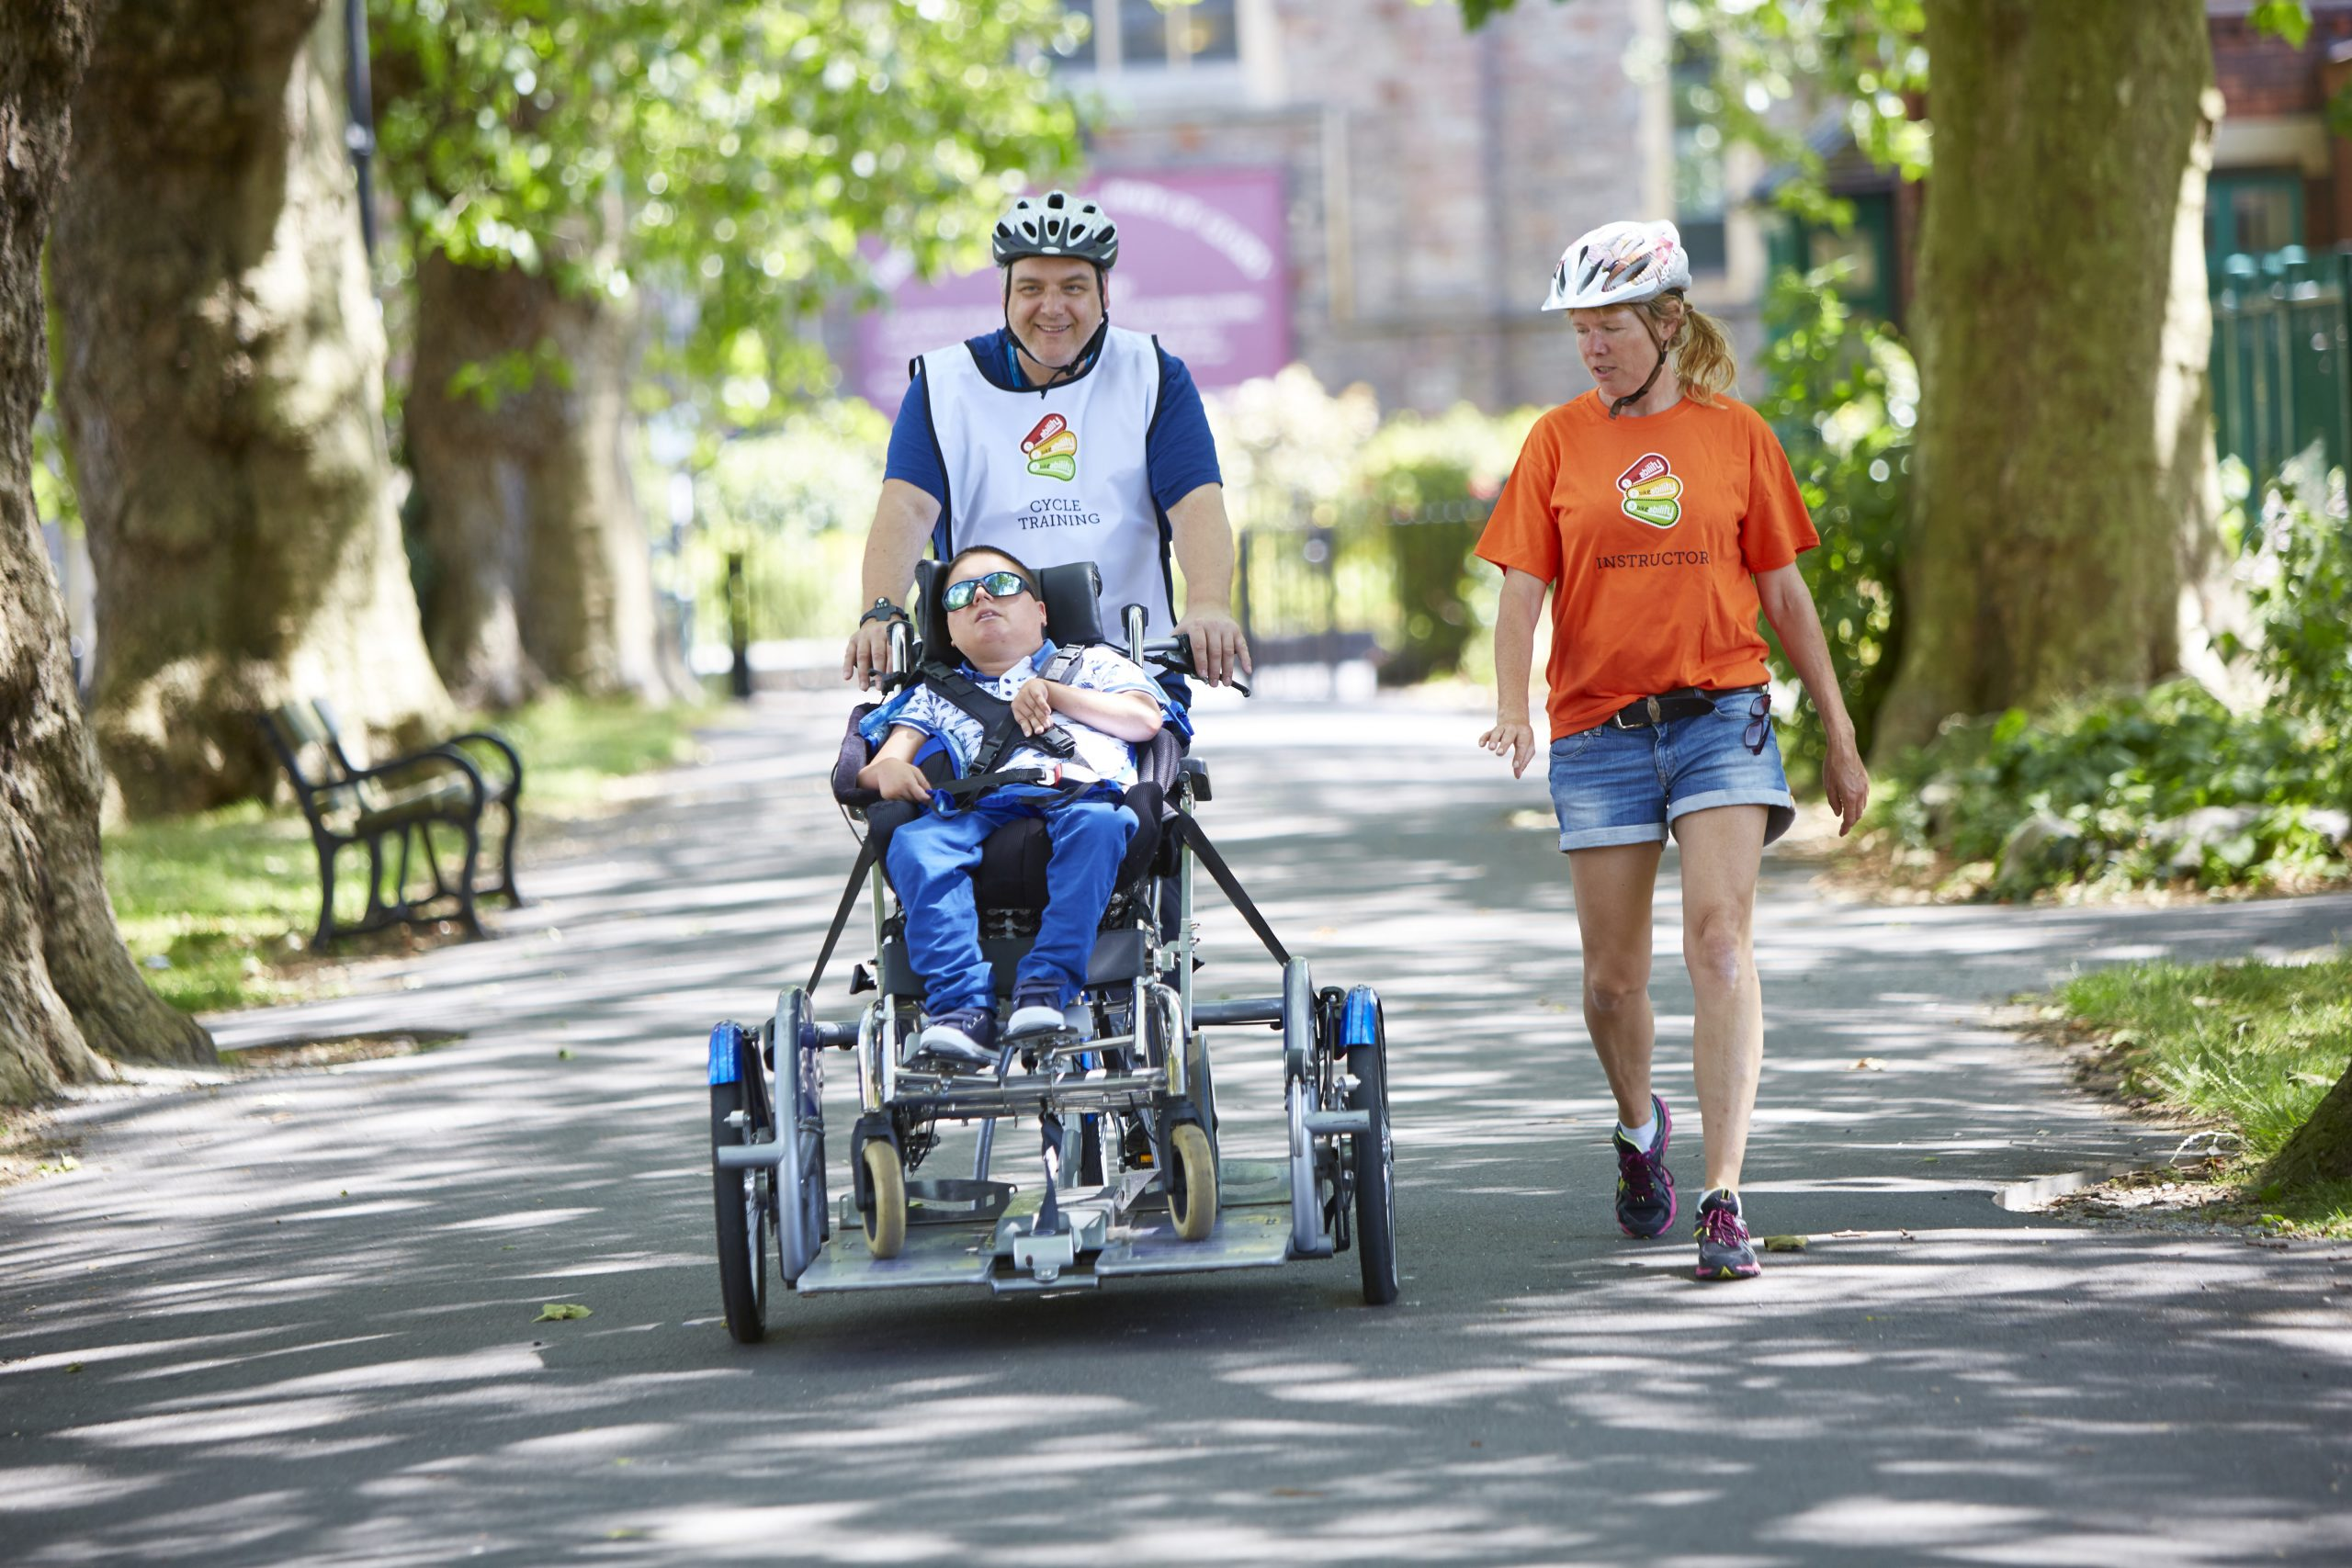 A child on an adapted bike being ridden by a man with a female instructor walking beside them